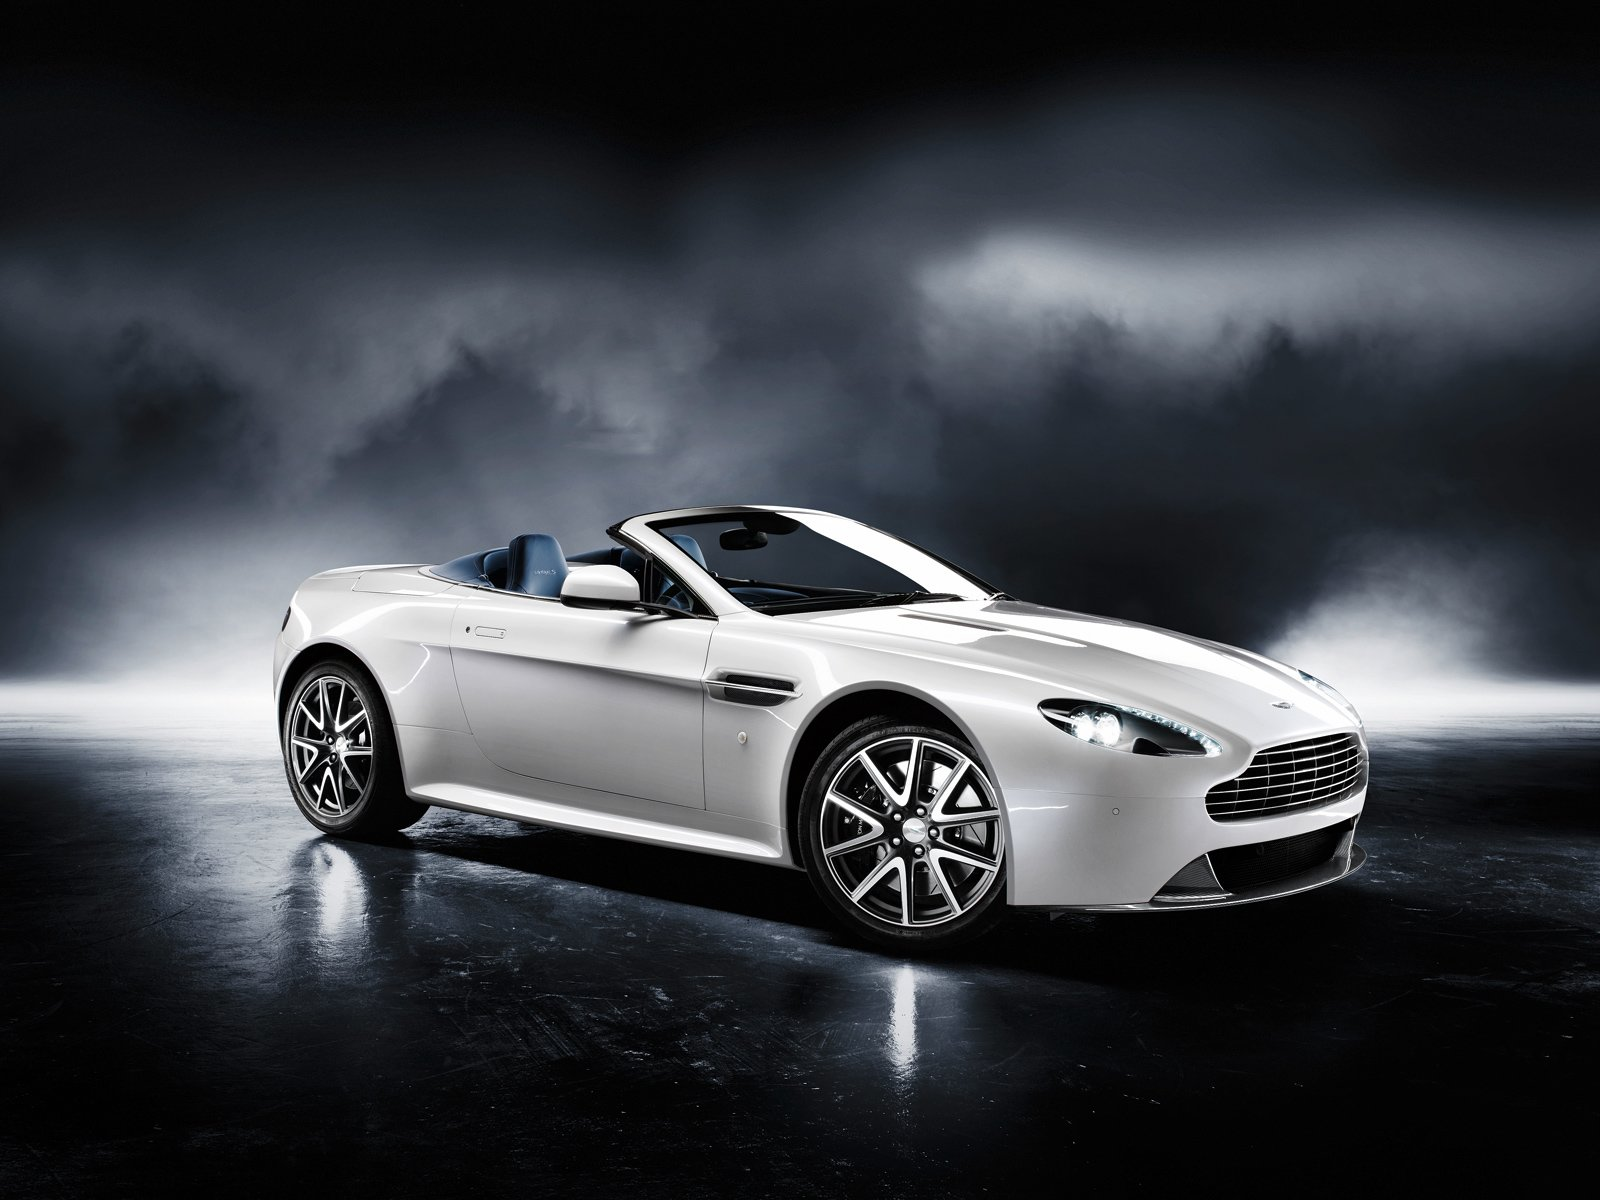 Latest Aston Martin Sports Car 2011 The Car Club Free Download